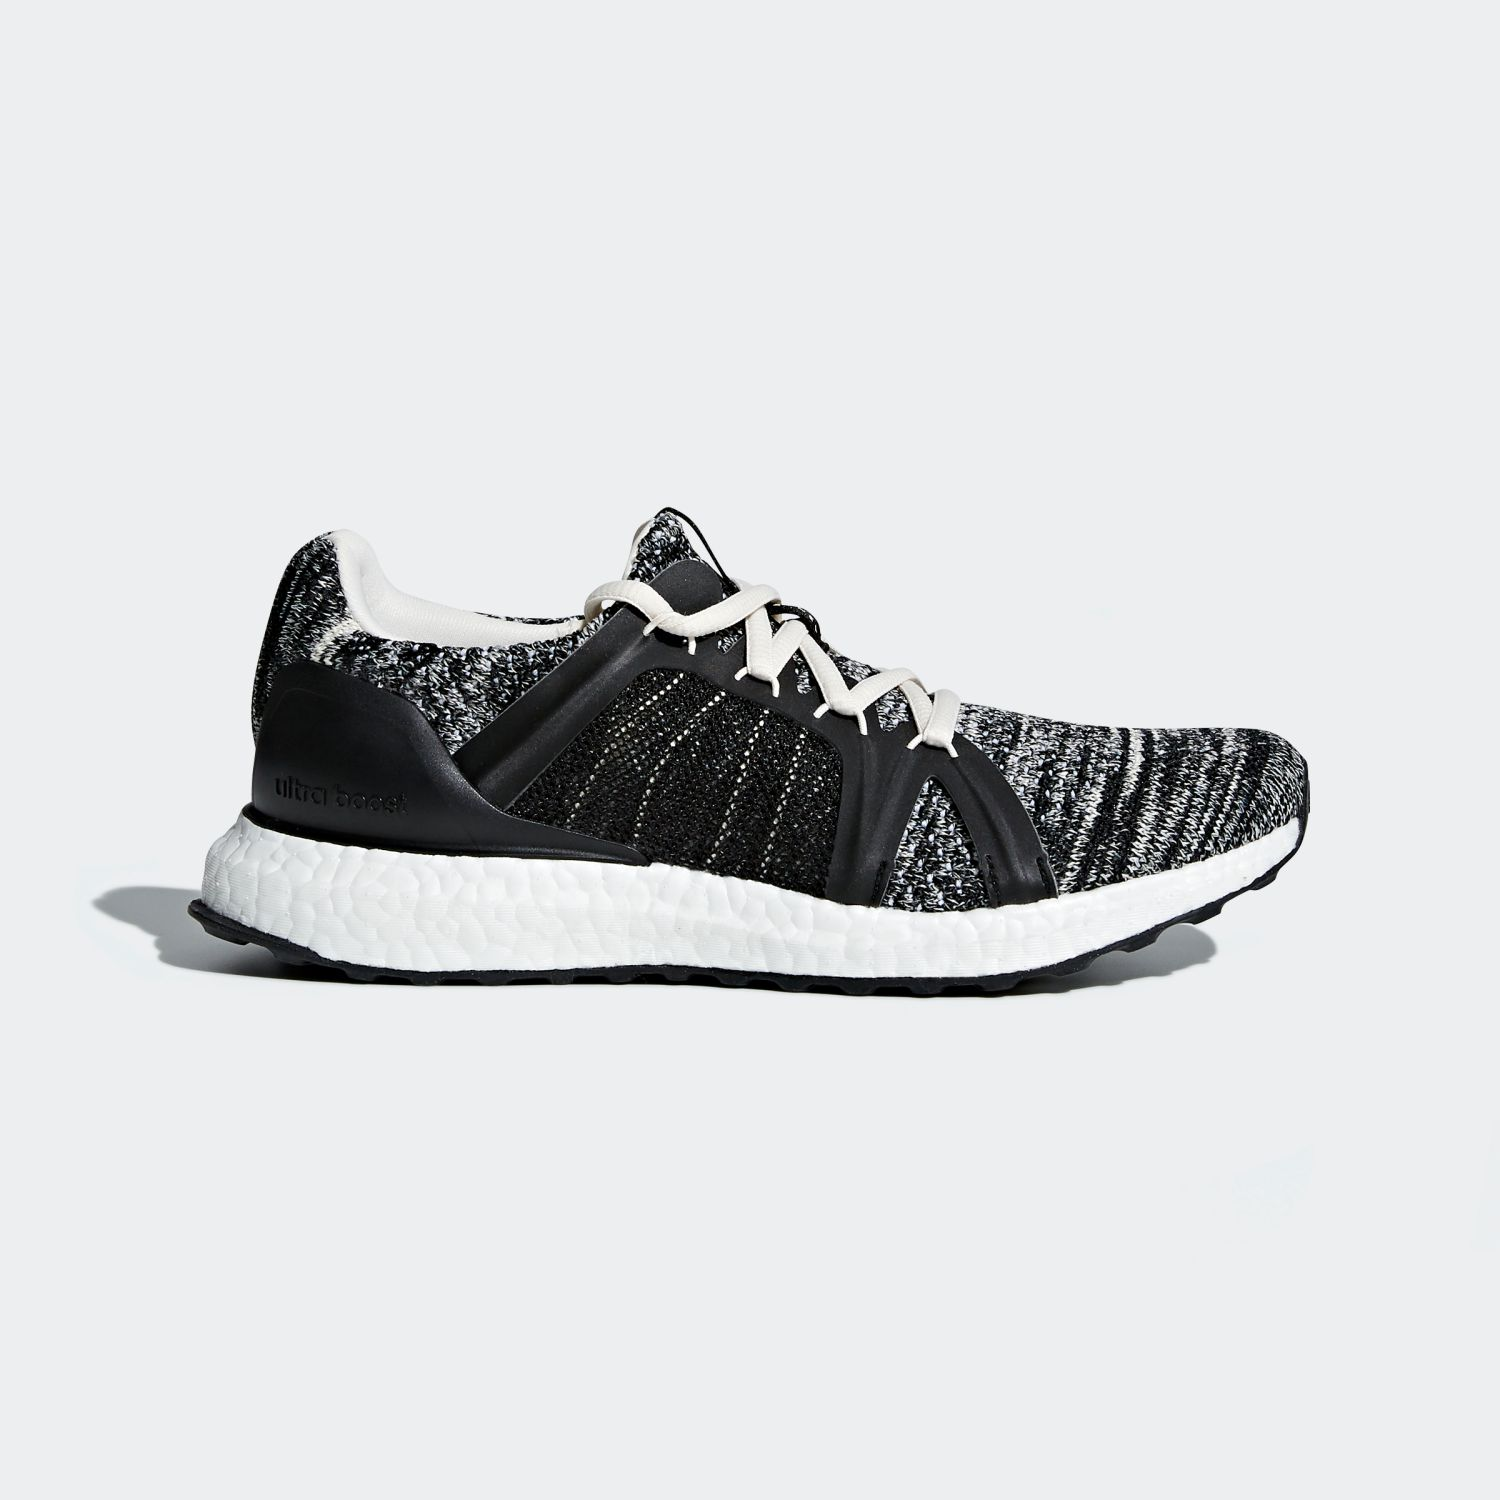 Ultra Boost Parley Stella McCartney Oreo (ウィメンズ)